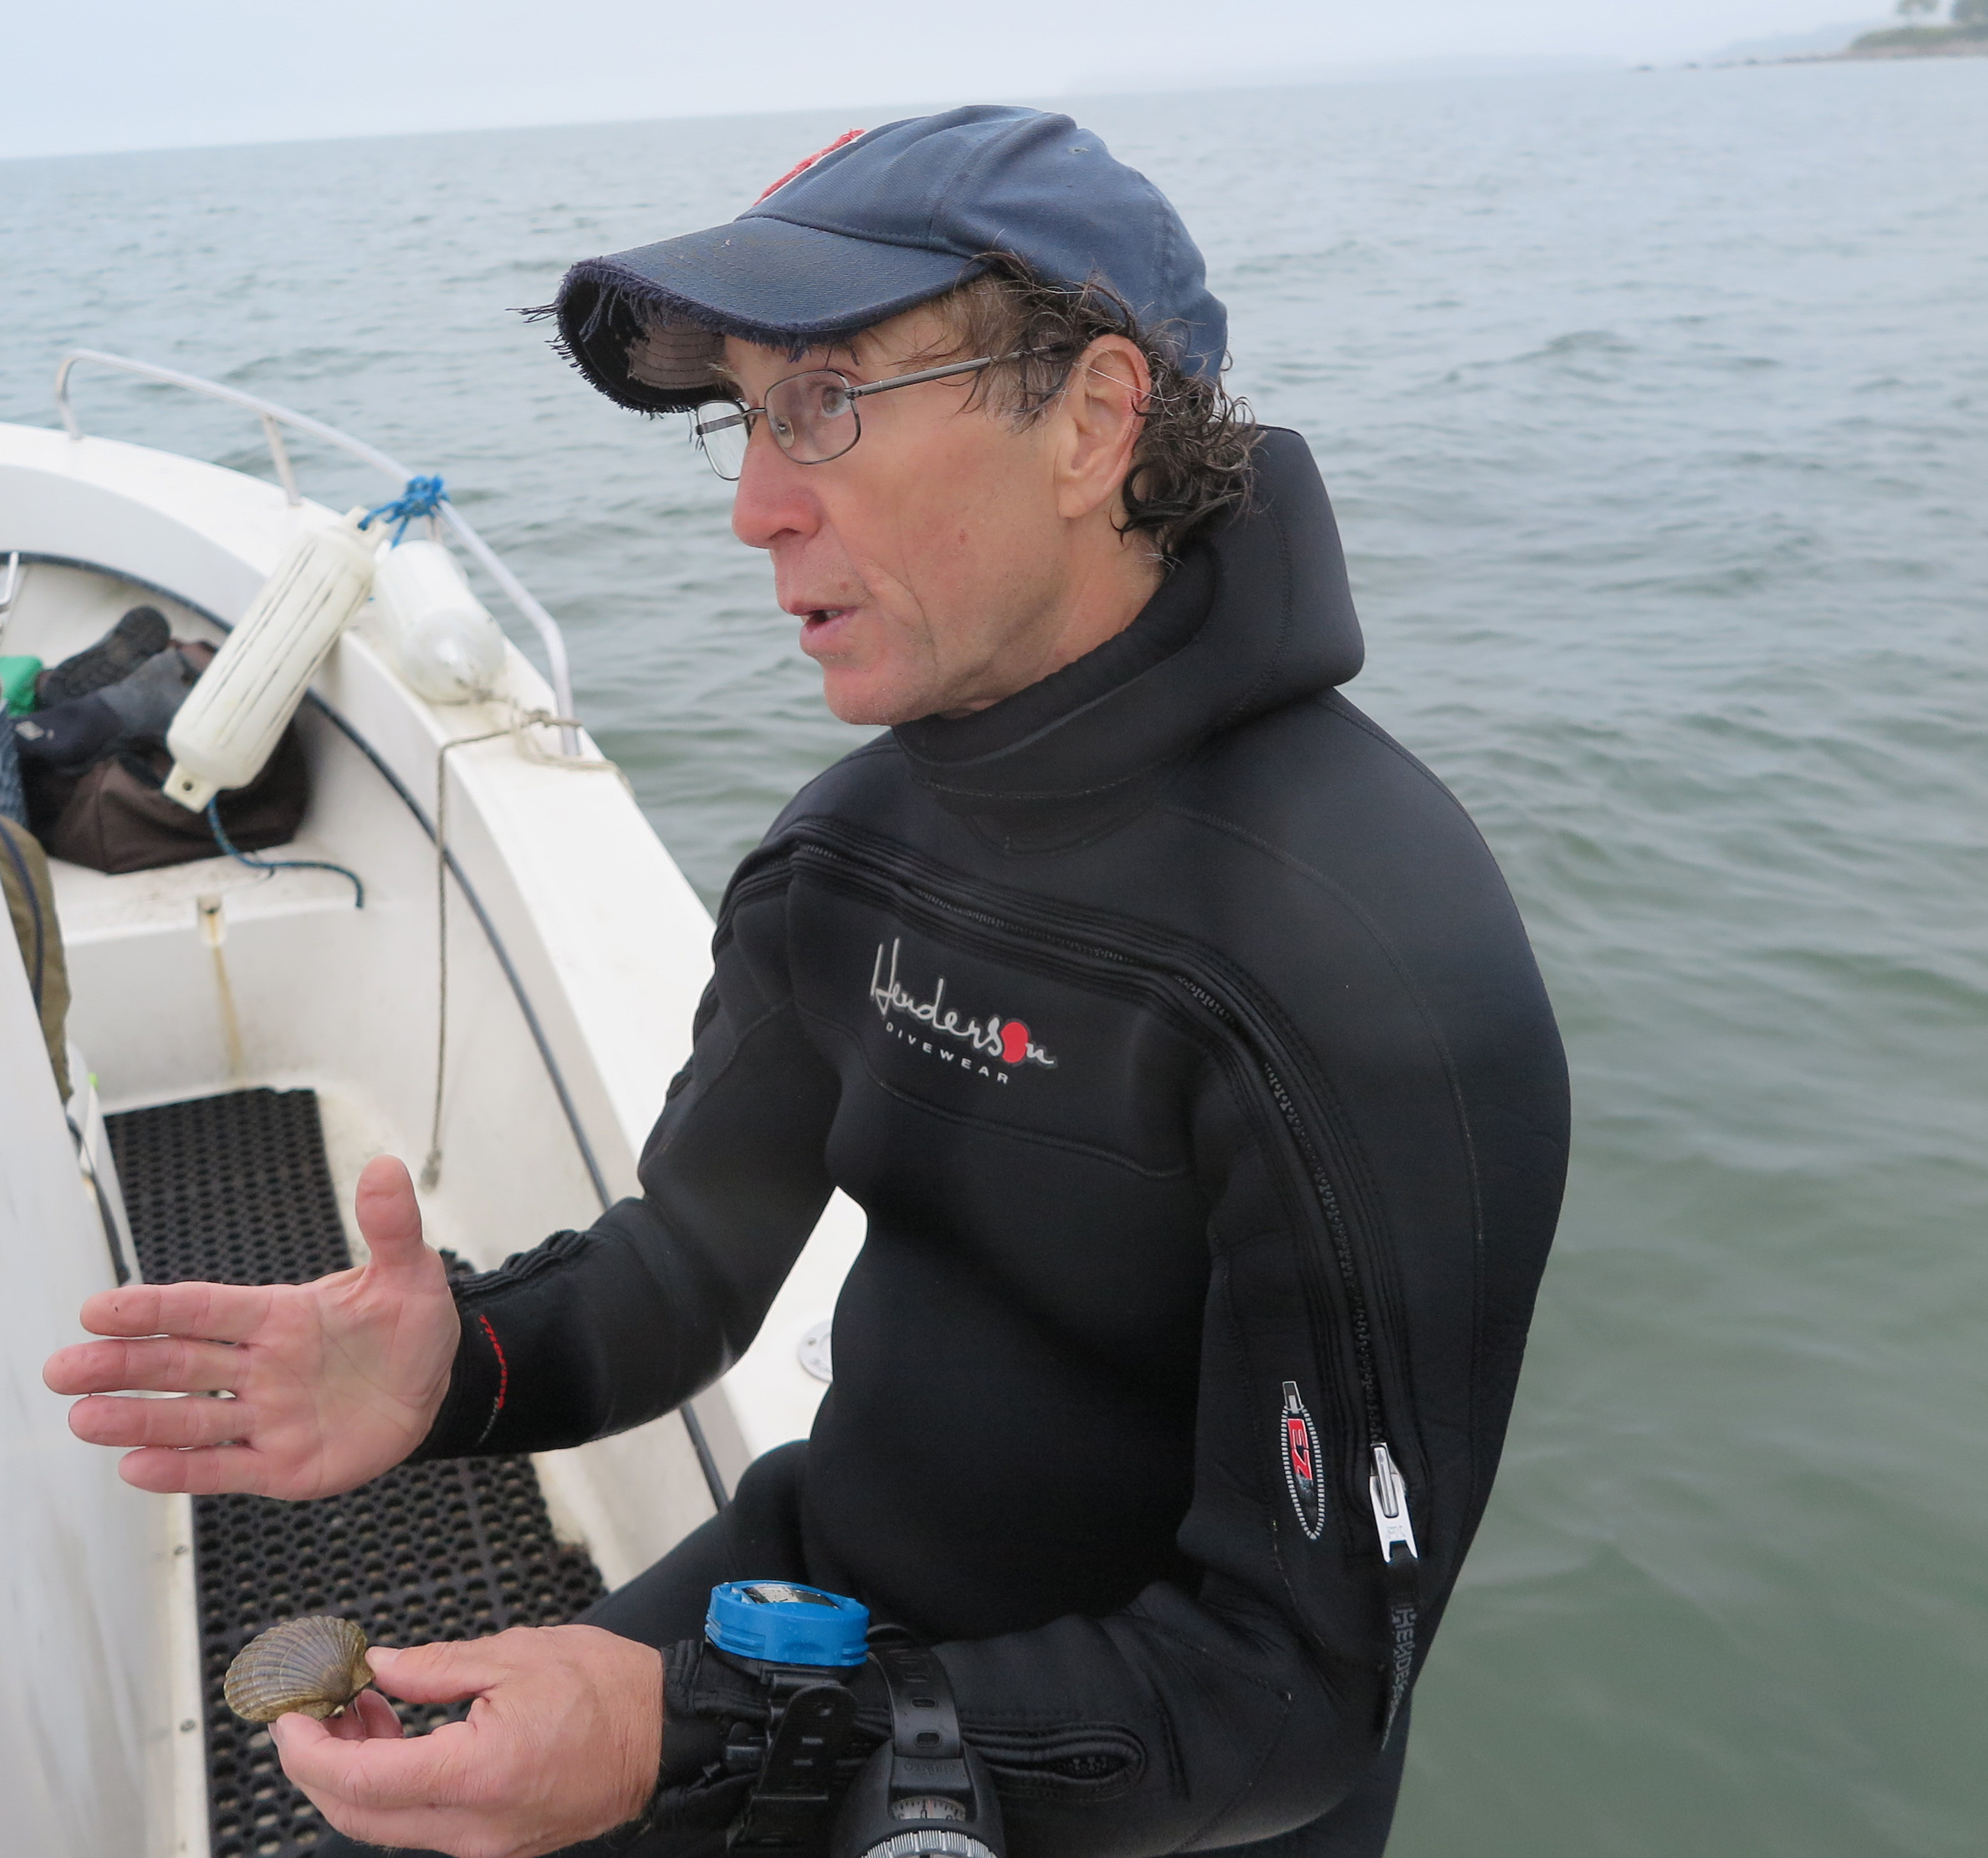 Dr. Stephen Tettelbach has been conducting bi-annual surveys of wild bay scallop populations for two decades. This year's surveys revealed a massive die-off of the scallops in the Peconics.